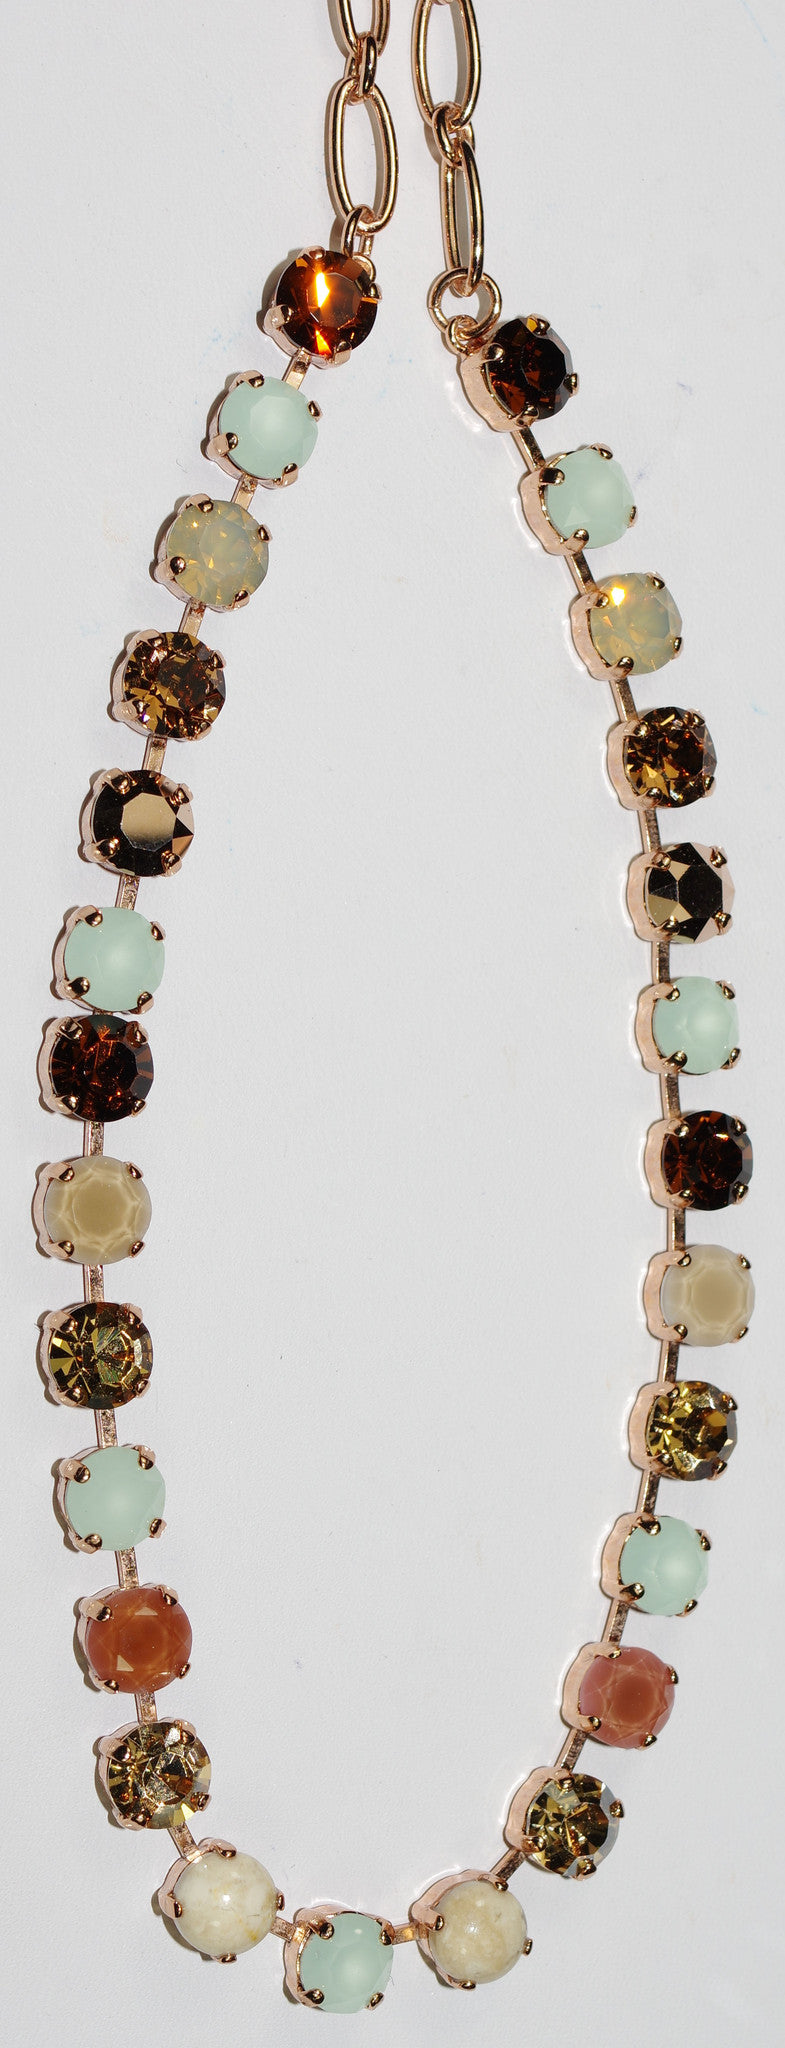 "MARIANA NECKLACE BETTE SERAI: beige, pacific opal, brown, amber 1/4"" stones in rose gold setting, 17"" adjustable chain"